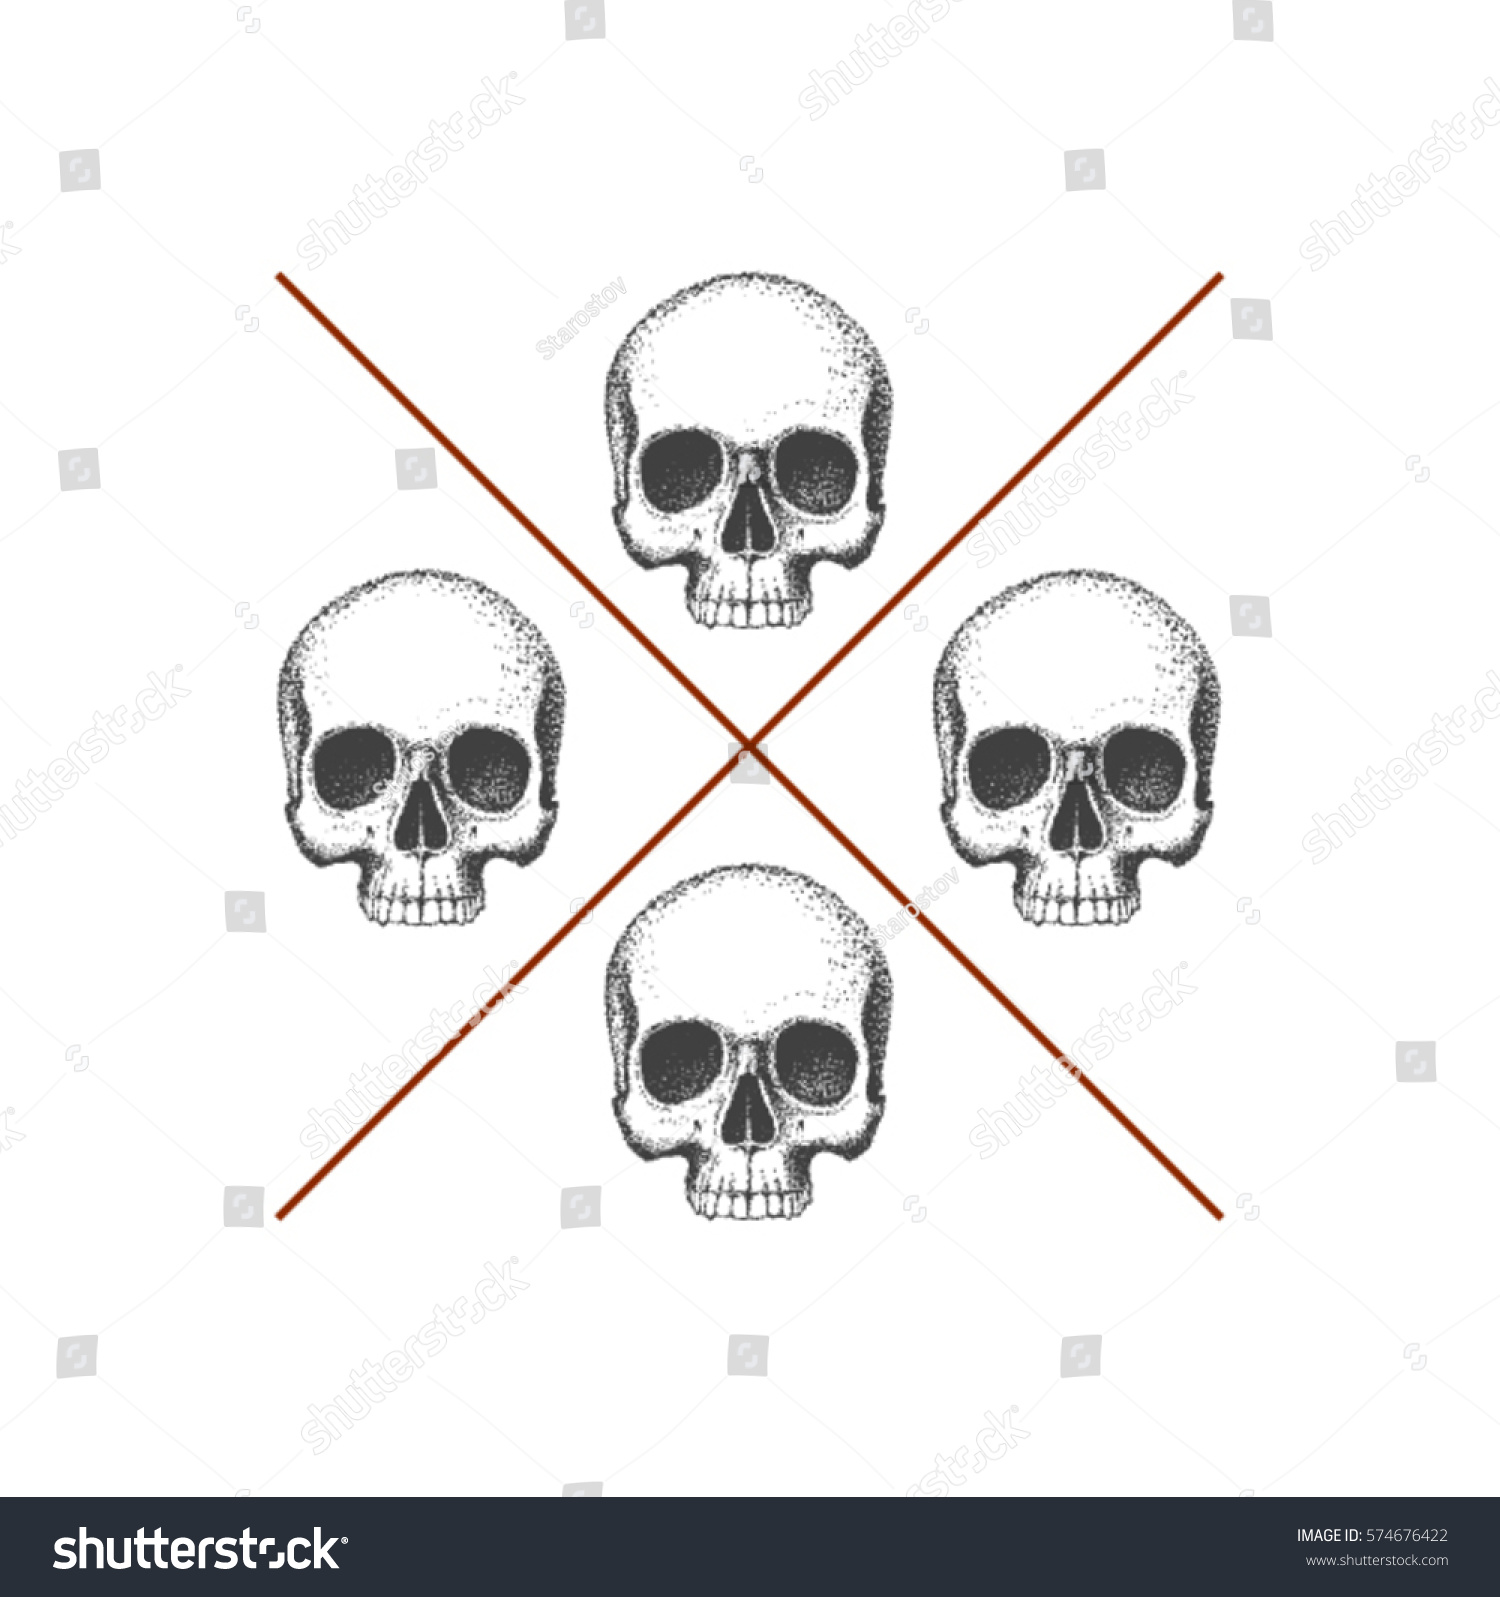 download without image logo shutterstock